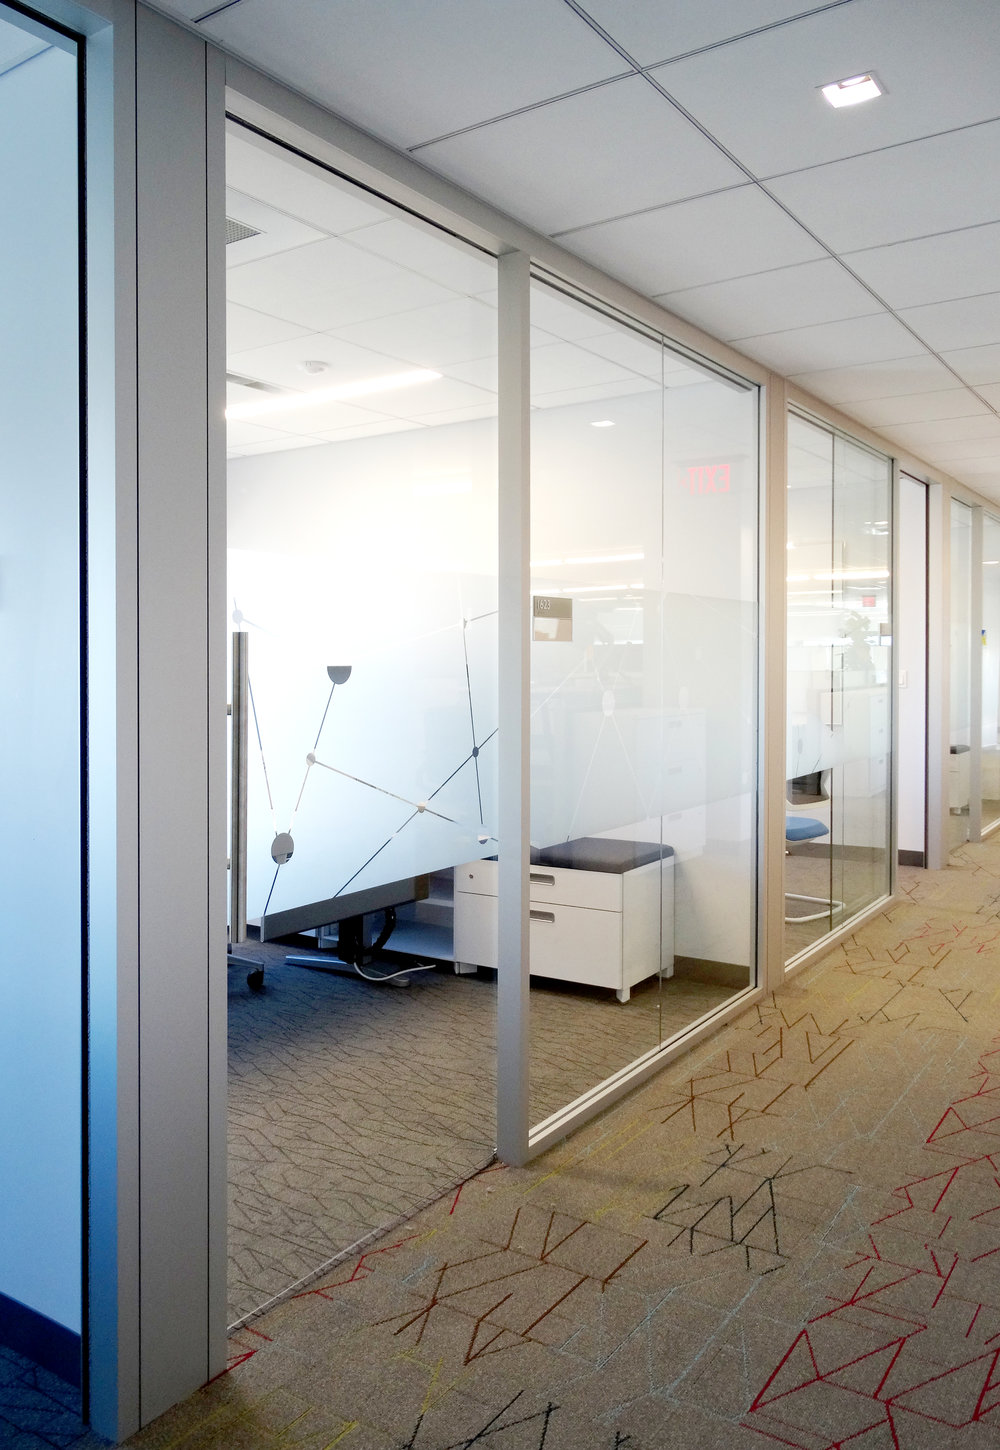 Litespace Glass Office Wall Frameless Glass Sliding Door - Spaceworks AI.jpg